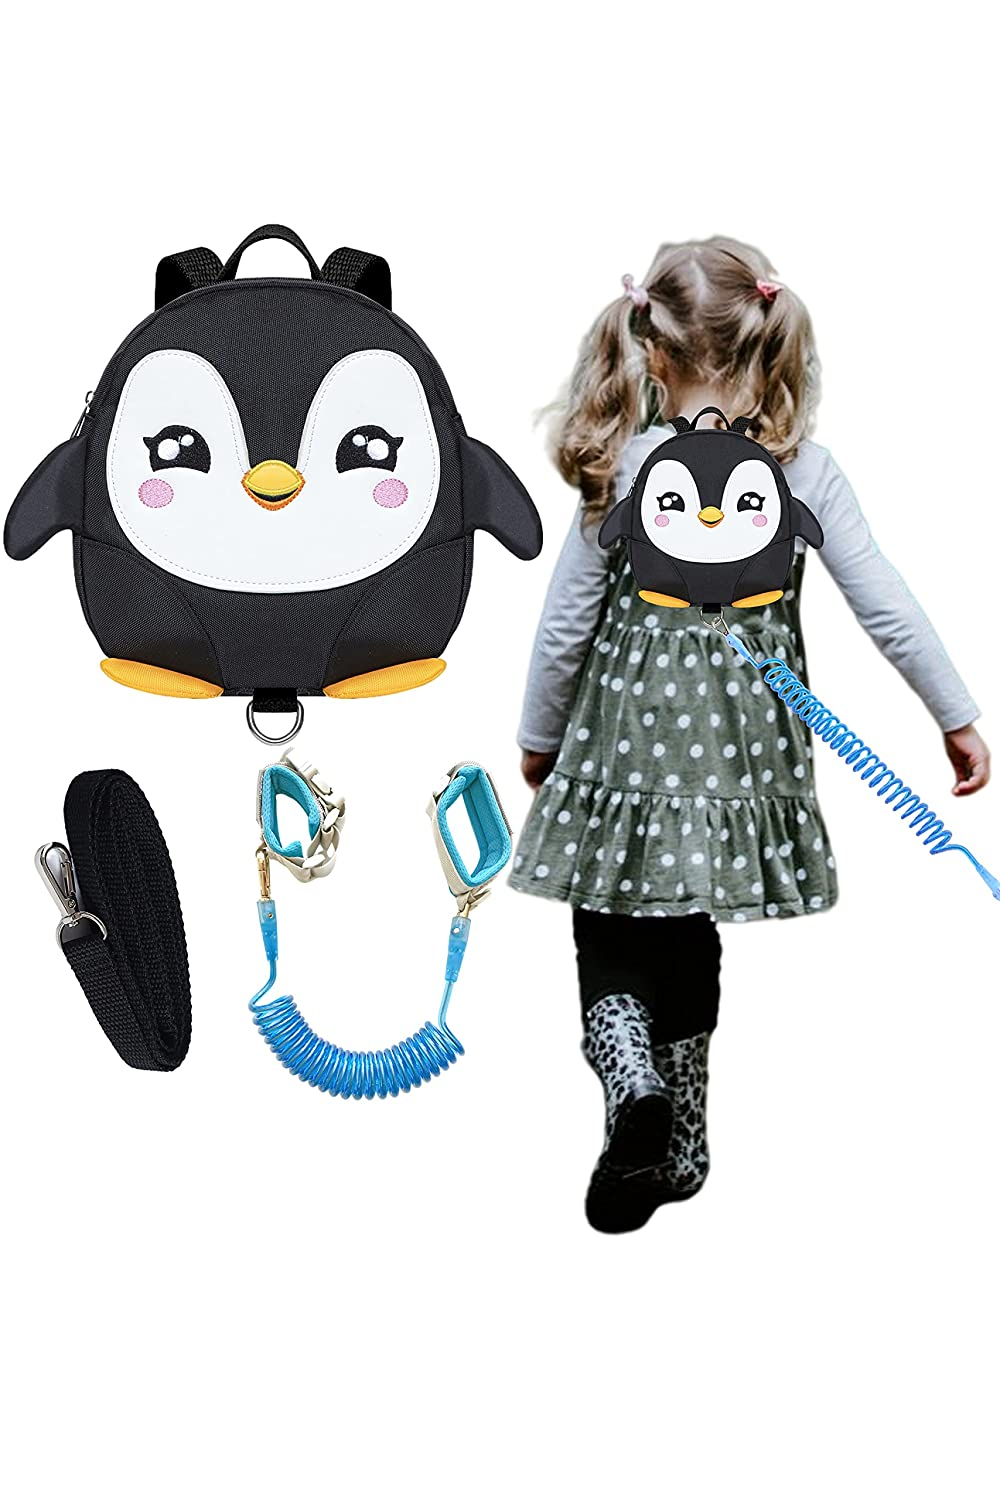 Penguin Toddlers Leash Backpacks with Child Kids Anti-Lost Wristlets Wrist Link (Black)